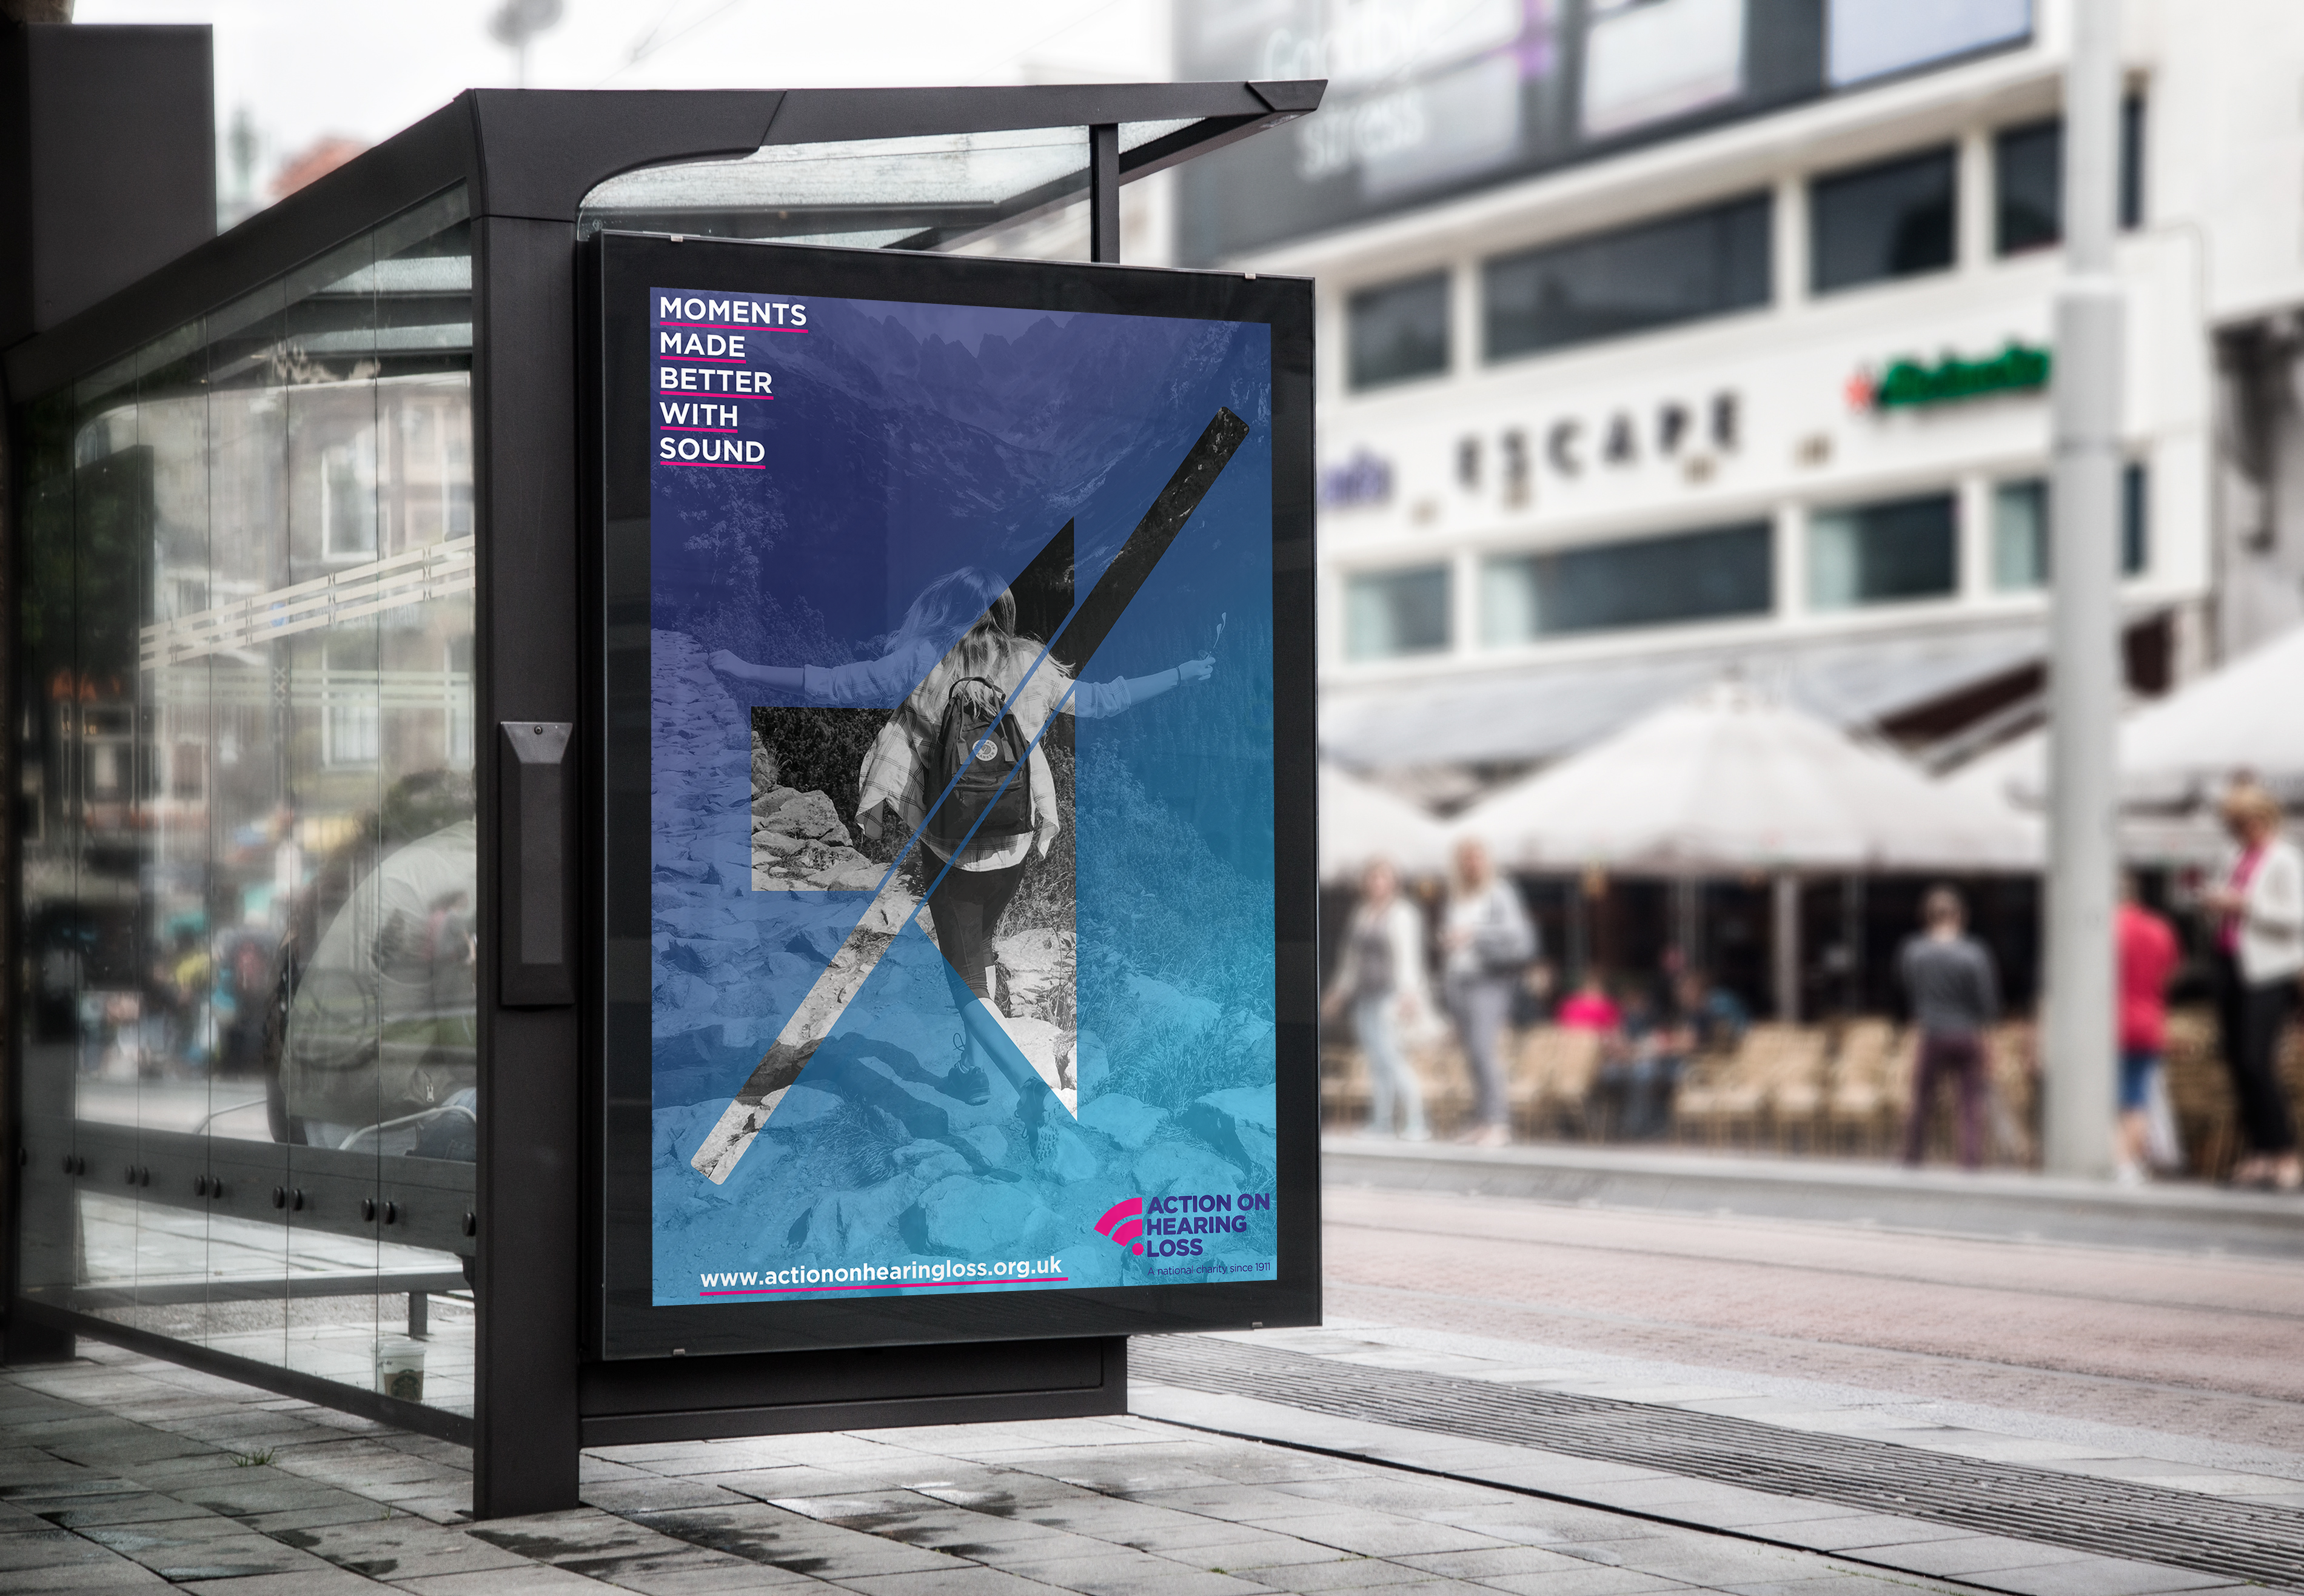 Bus Stop Advertisement raising awareness on loss of hearing in young adults